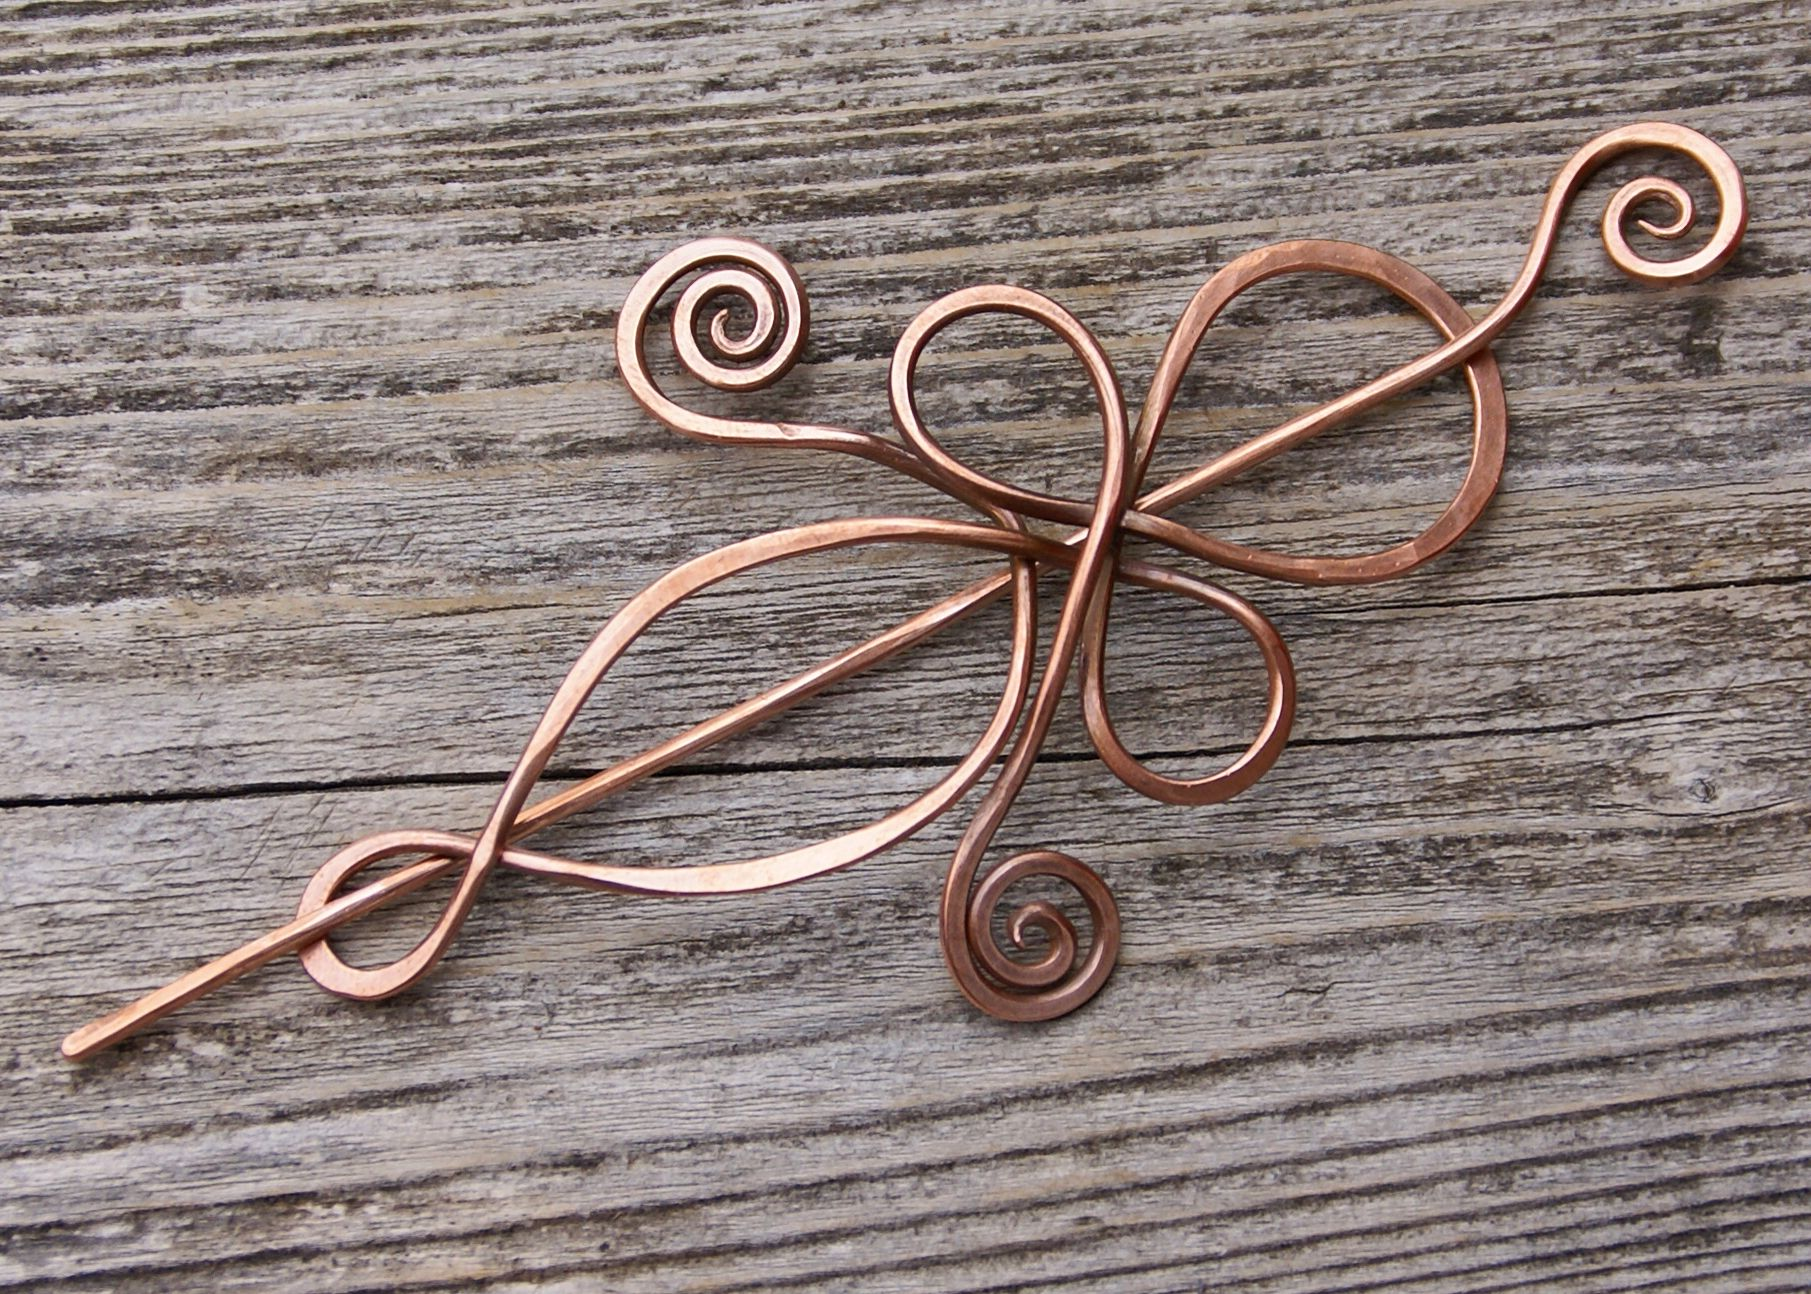 Hand wrought copper shawl pin by Diana Stein  www.beachcombergal.etsy.com